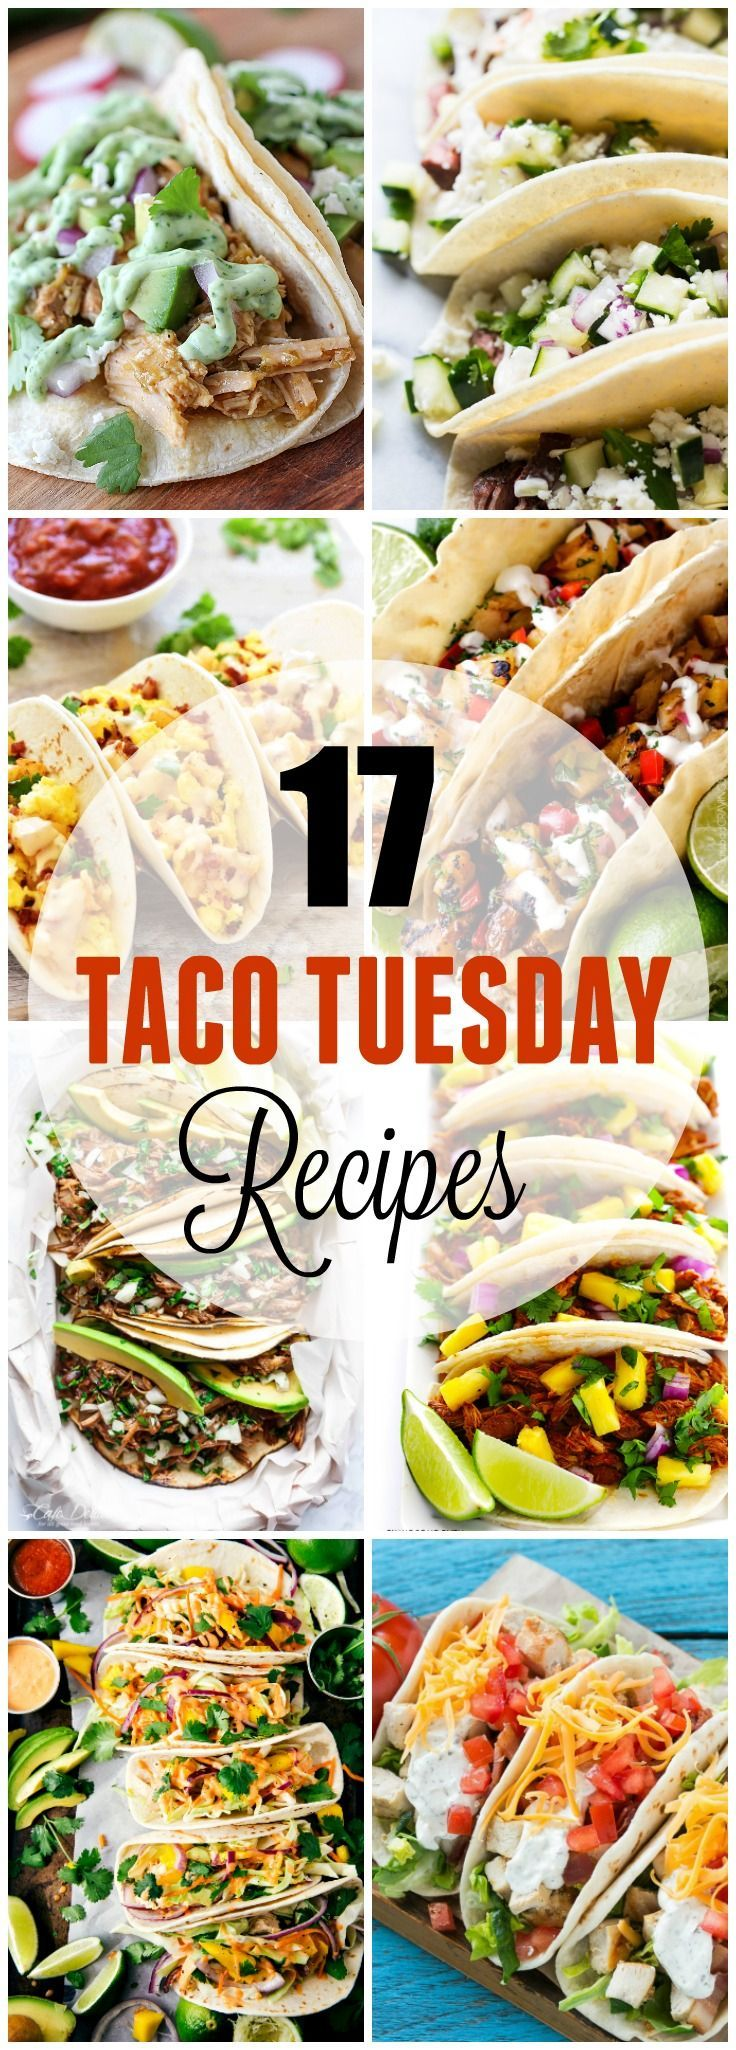 Dress up Taco Tuesday with these 17 Creative Taco Tuesday Recipes! Several unique but easy to make taco recipes youll love, all together in one place! Easy to make flavorful meats, salsas loaded up with fruits and spice, and some creative classic comfort foods adapted for tacos!